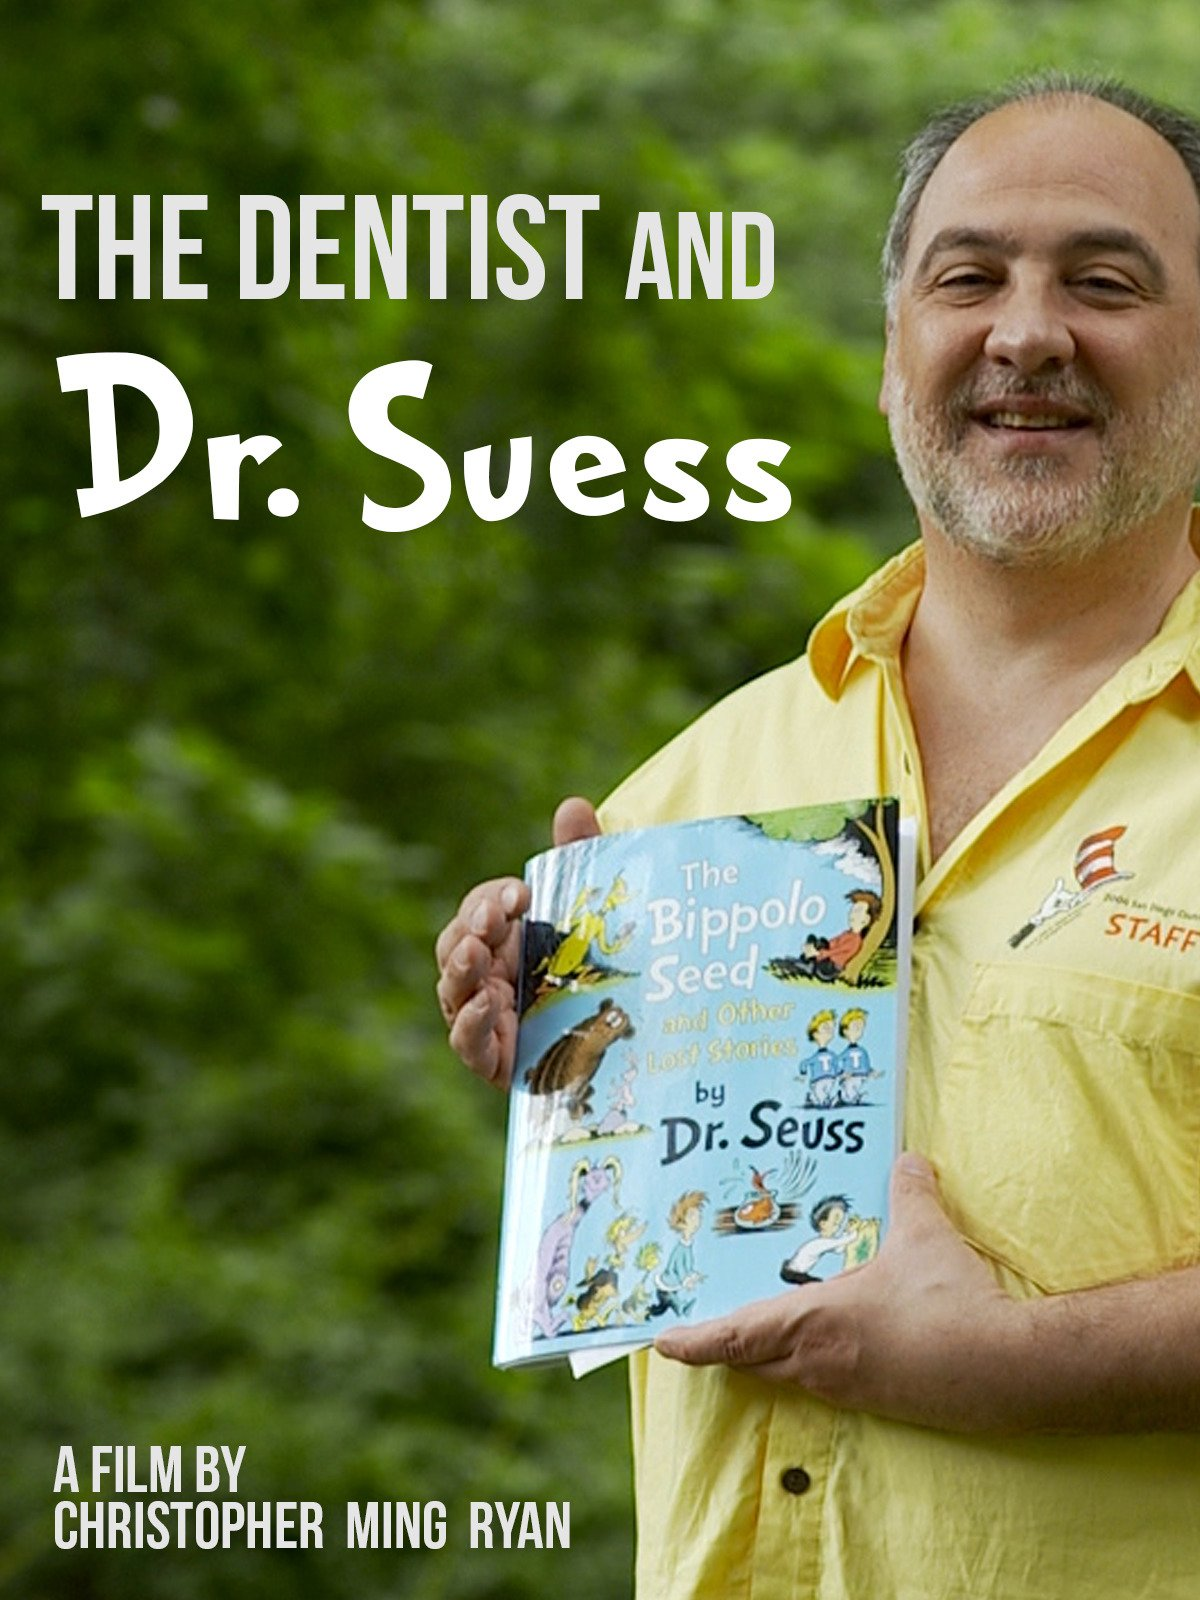 The Dentist and Dr. Suess